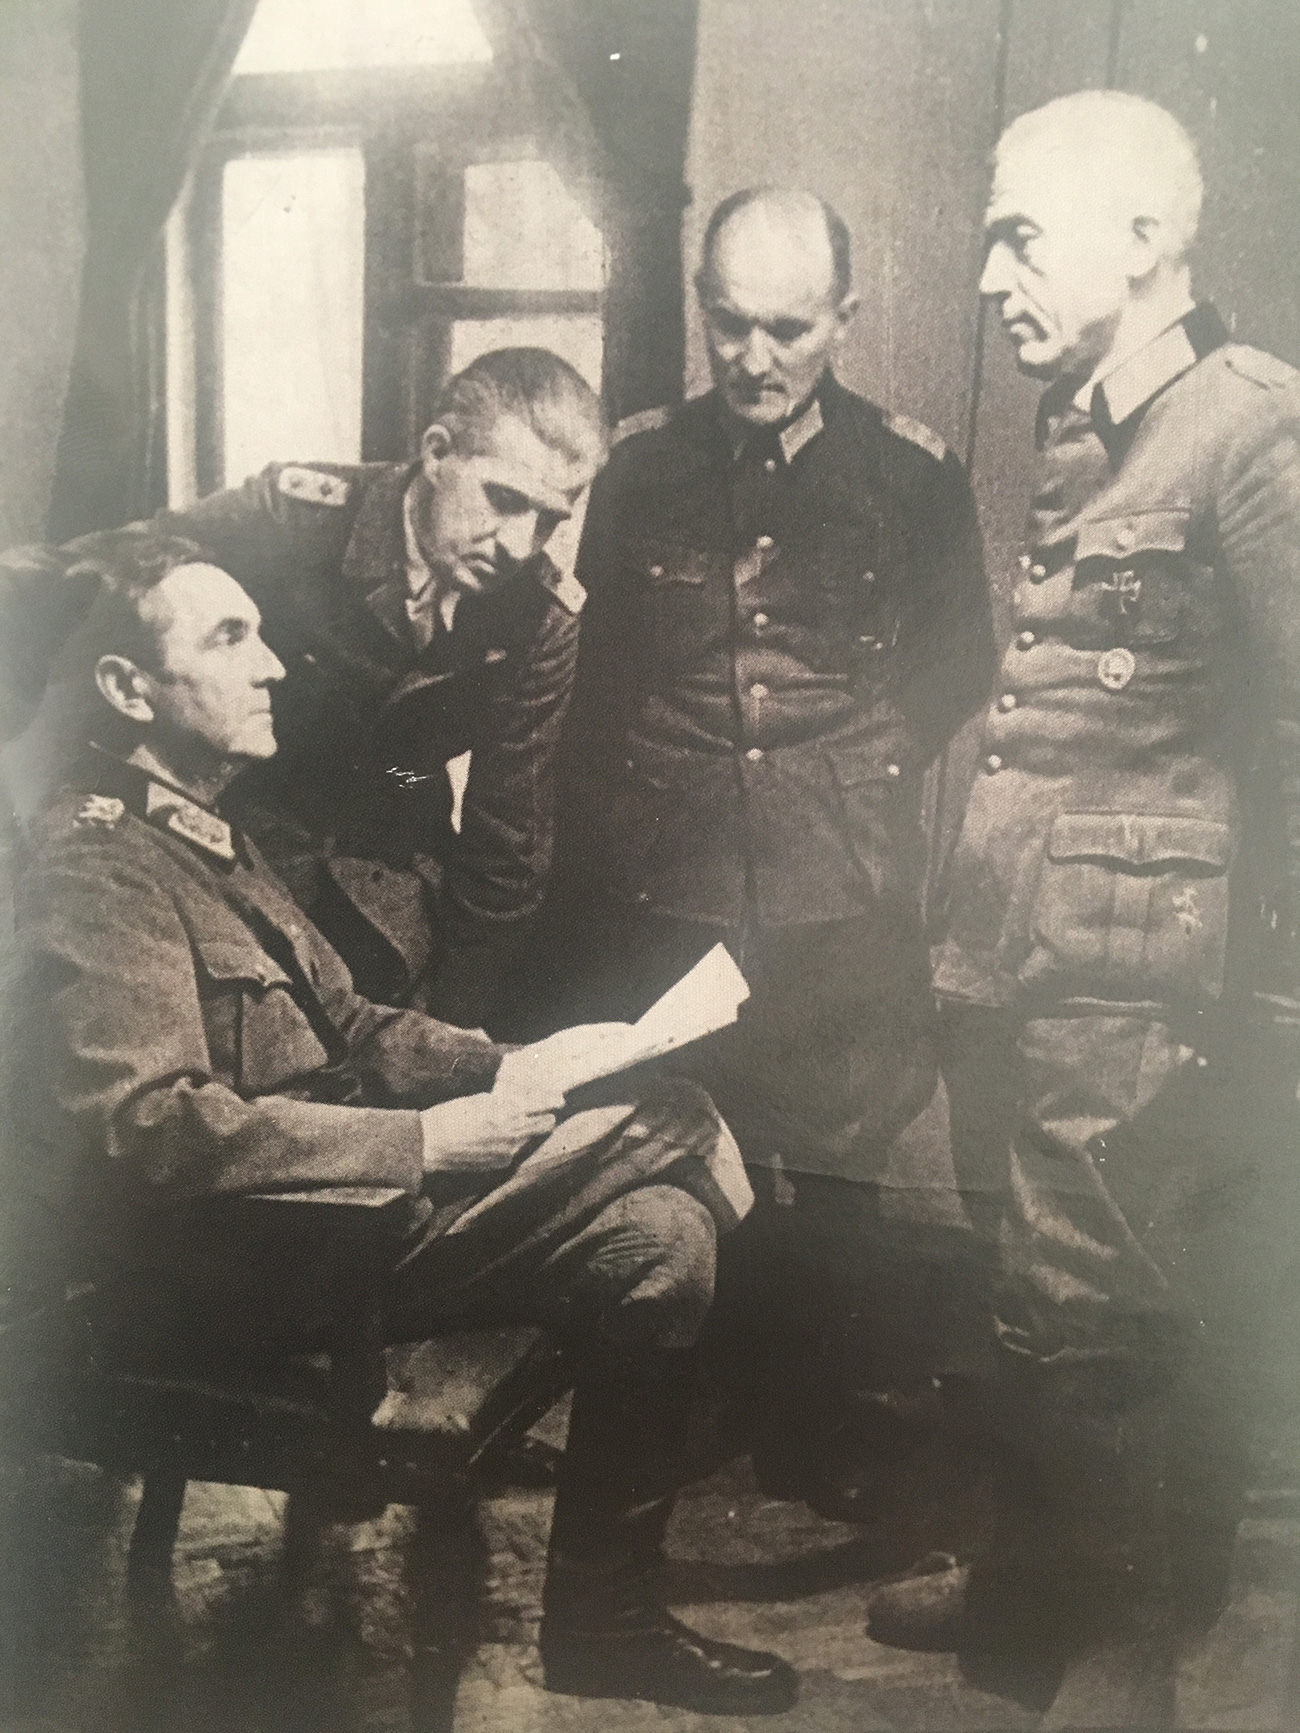 """On August 8, 1944, a year and a half after having been taken prisoner, Paulus spoke on Free Germany Radio and addressed Wehrmacht soldiers. """"For Germany, the war is lost. This is the position in which the country has found itself as a result of Adolf Hitler's leadership. Germany must renounce Hitler."""" Source: Archive"""